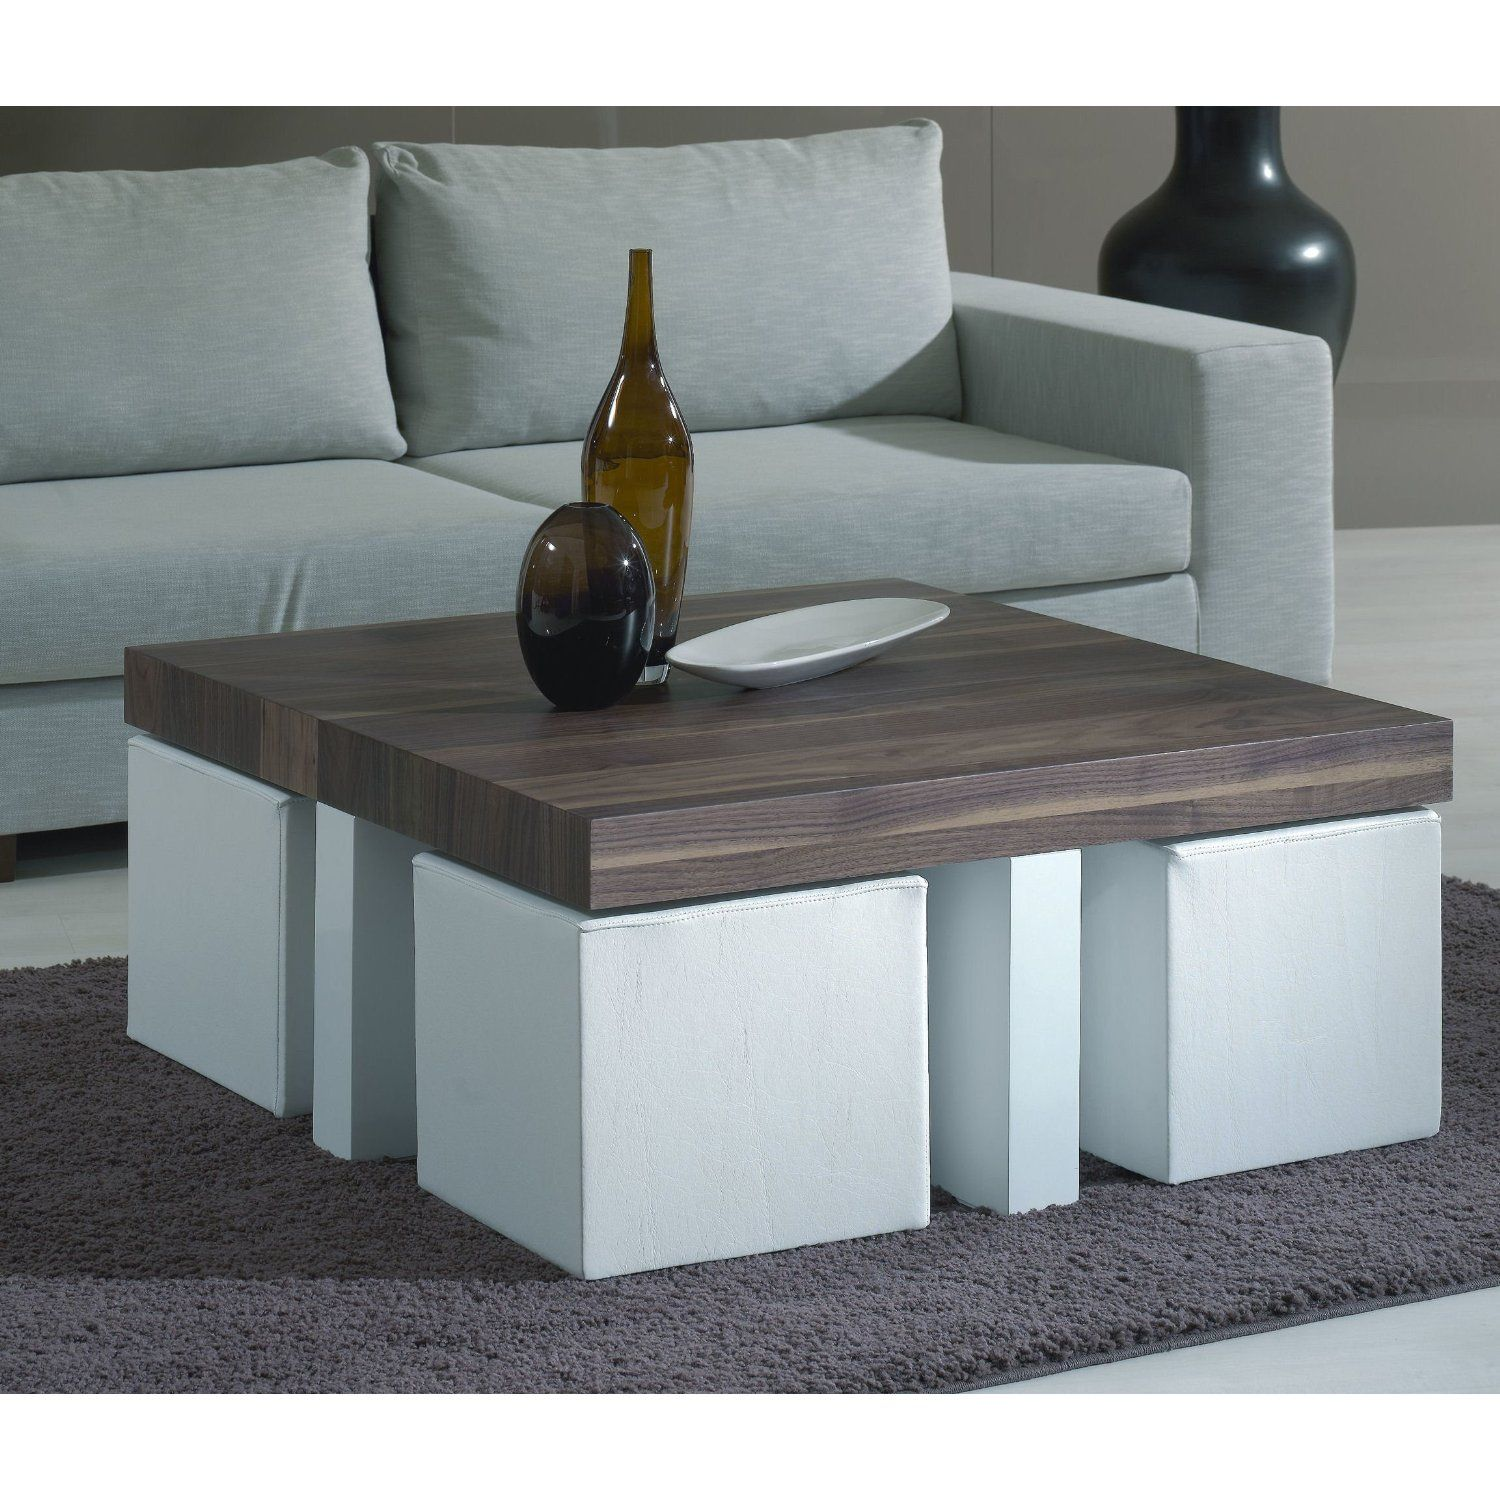 Coffee Table With Stools Coffee Table With Seating Coffee Table With Stools Underneath Coffee Table Square